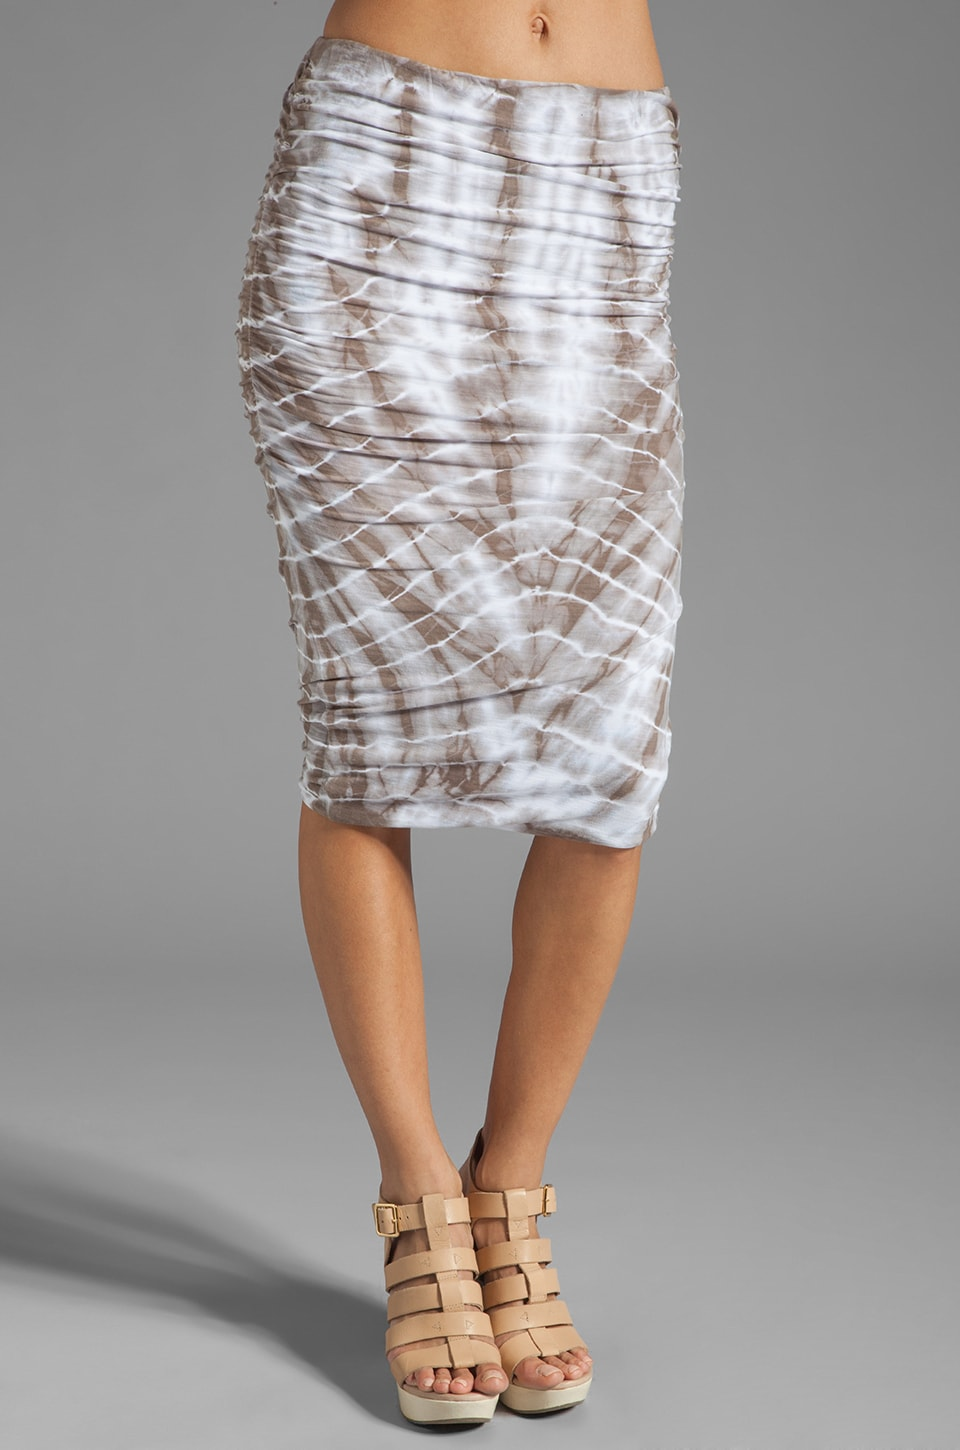 James Perse Tie Dye Ruched Pencil Skirt in Burro